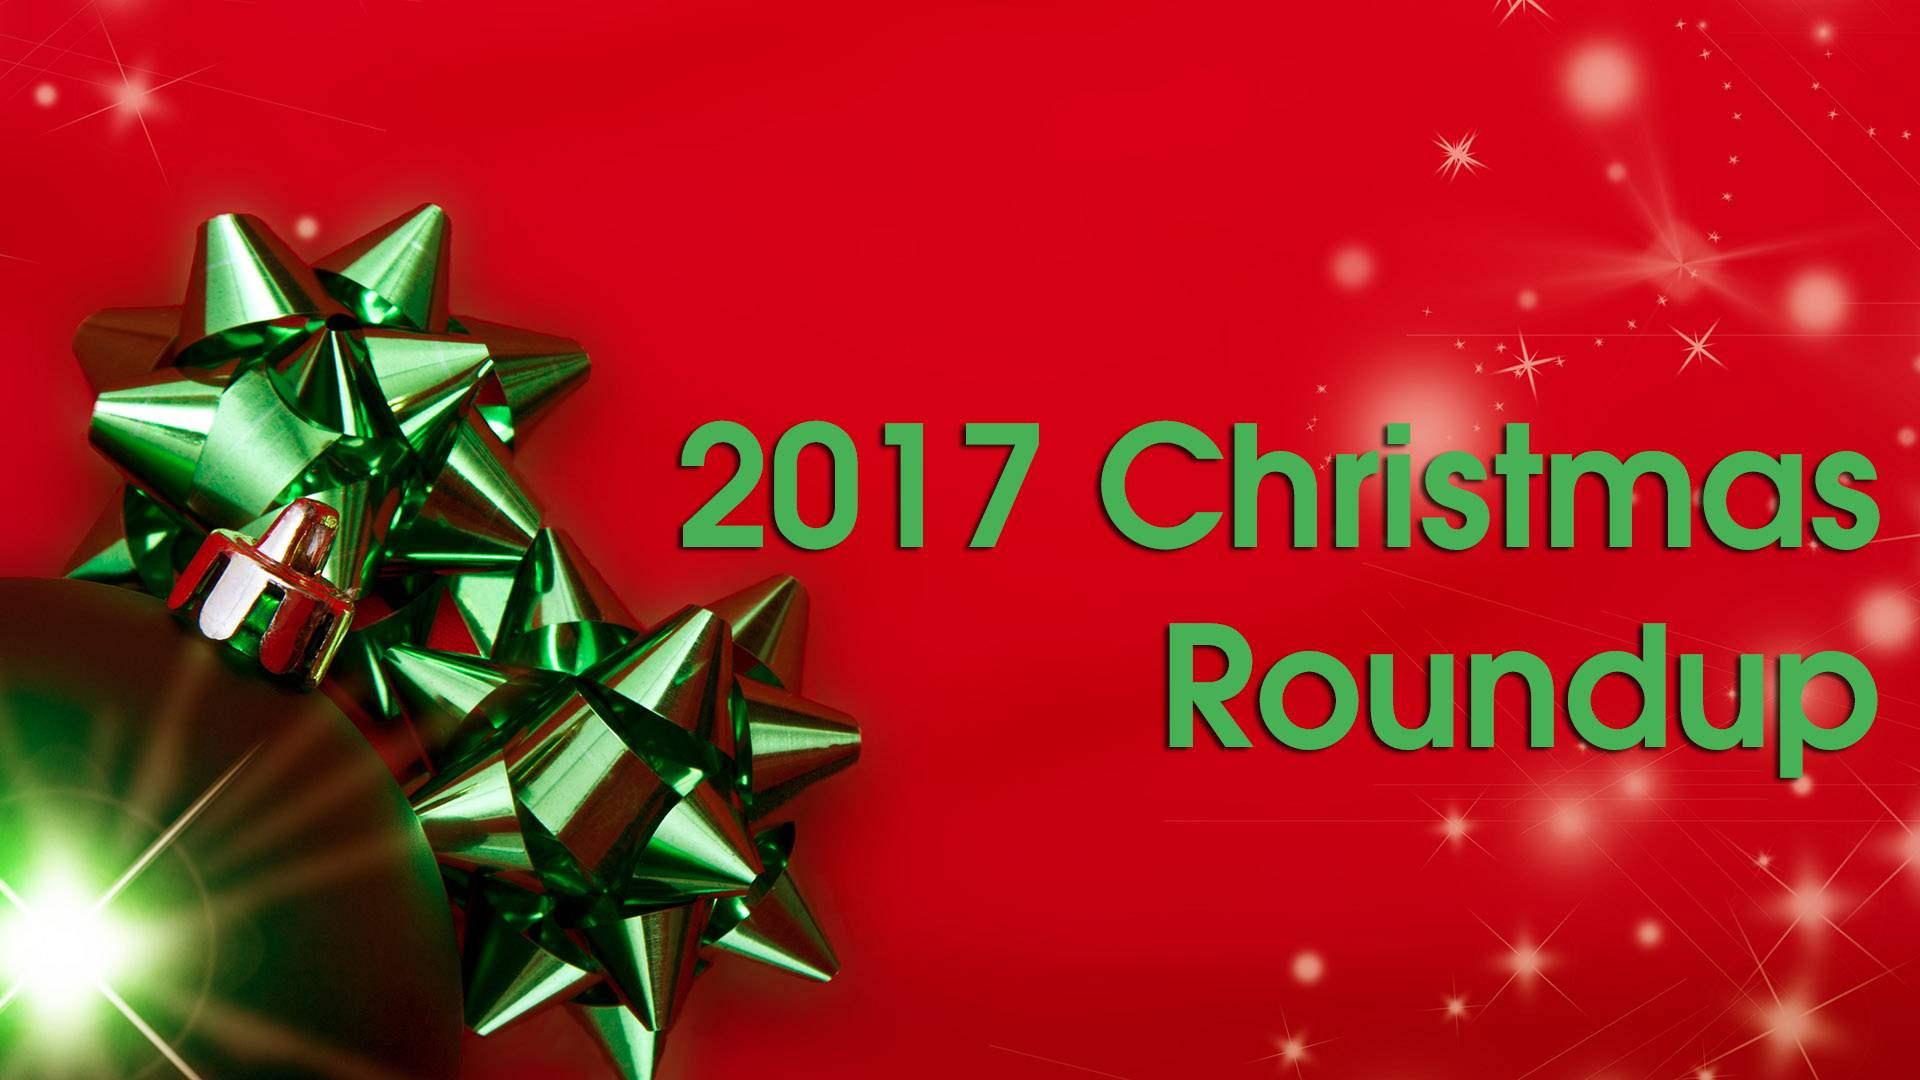 Christmas Roundup 2017 Your Daily Guide To Holiday Events For The